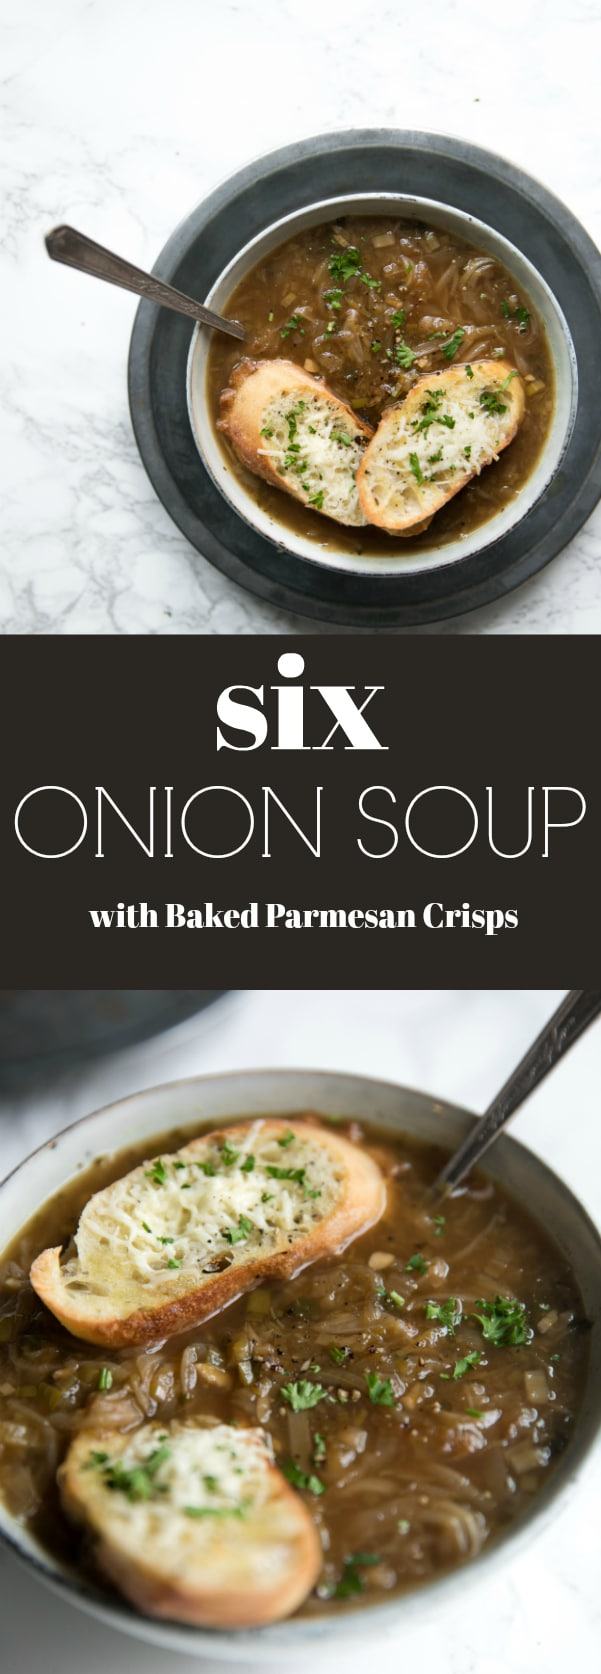 Easy 6 Onion Soup with Baked Parmesan Crisps. Six kinds of onions cook together to make this comforting, fragrant and delicious winter soup. Topped with baked Parmesan crisps, you can still enjoy all the flavors of classic French Onion Soup, but with less guilt. #soup #onionsoup #frenchonionsoup #winter #comfortfood